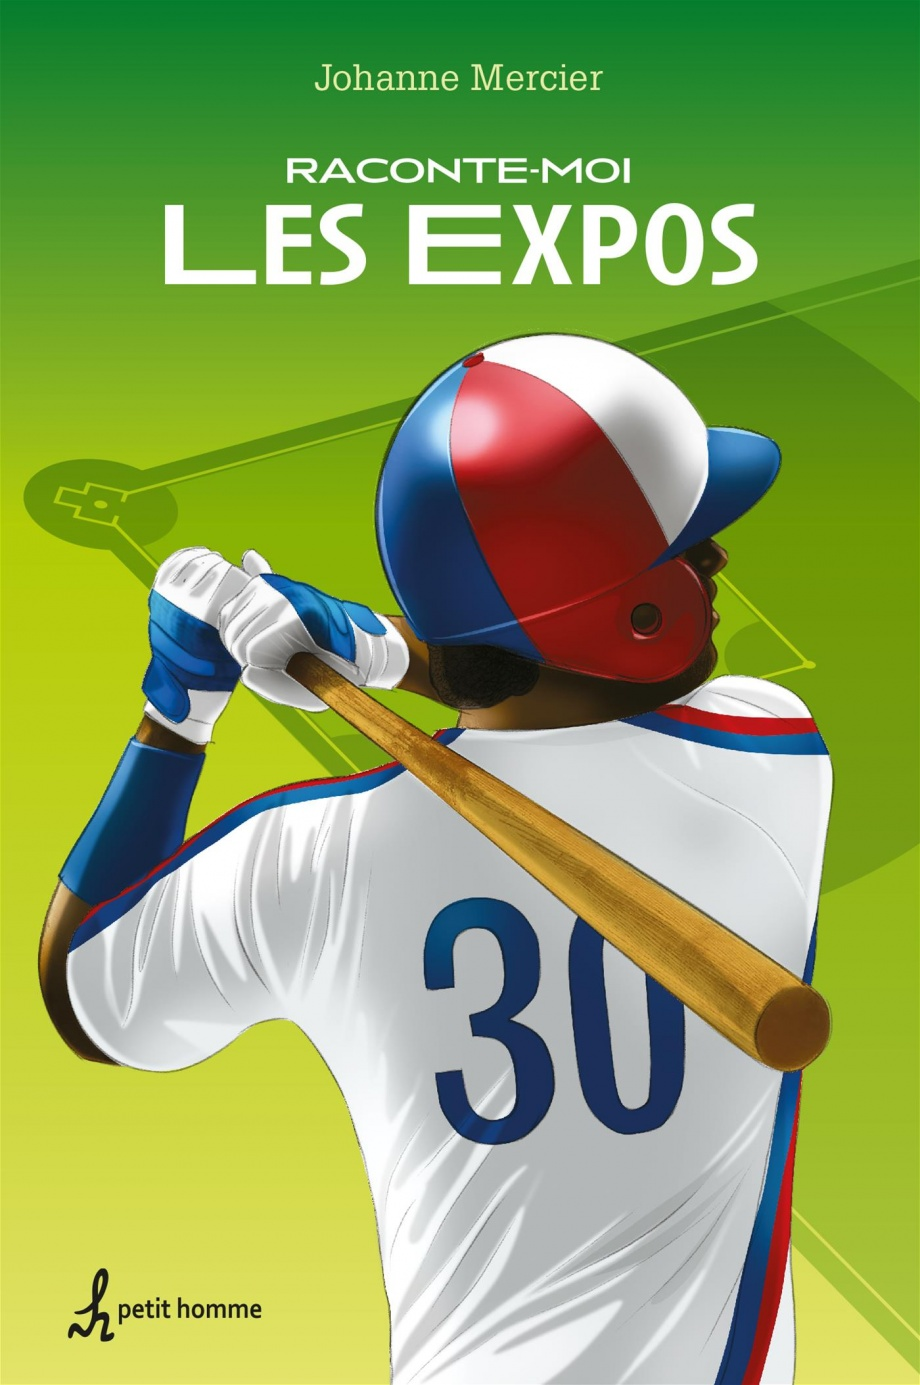 Les Expos